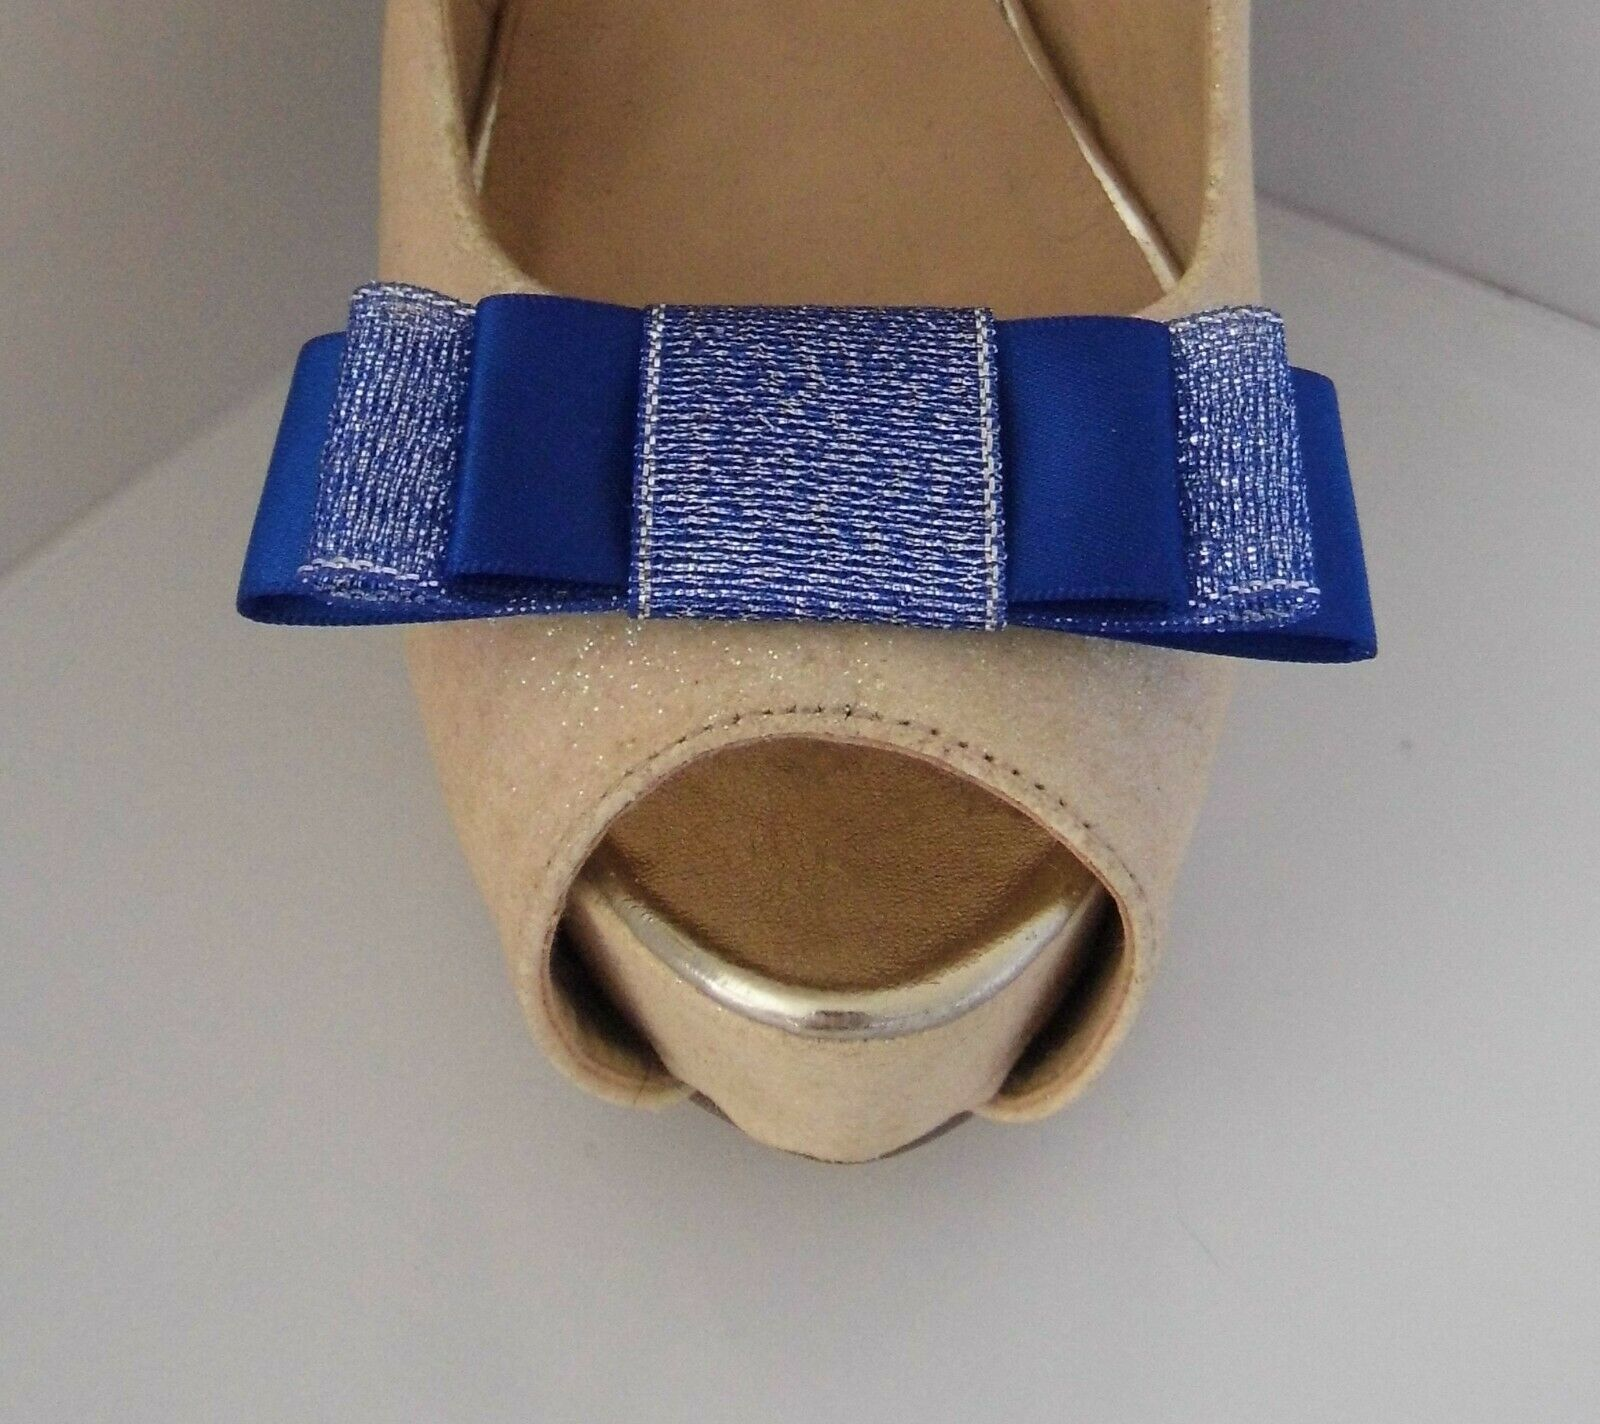 2 Royal Blue Satin & Glitter Triple Bow Clips for Shoes